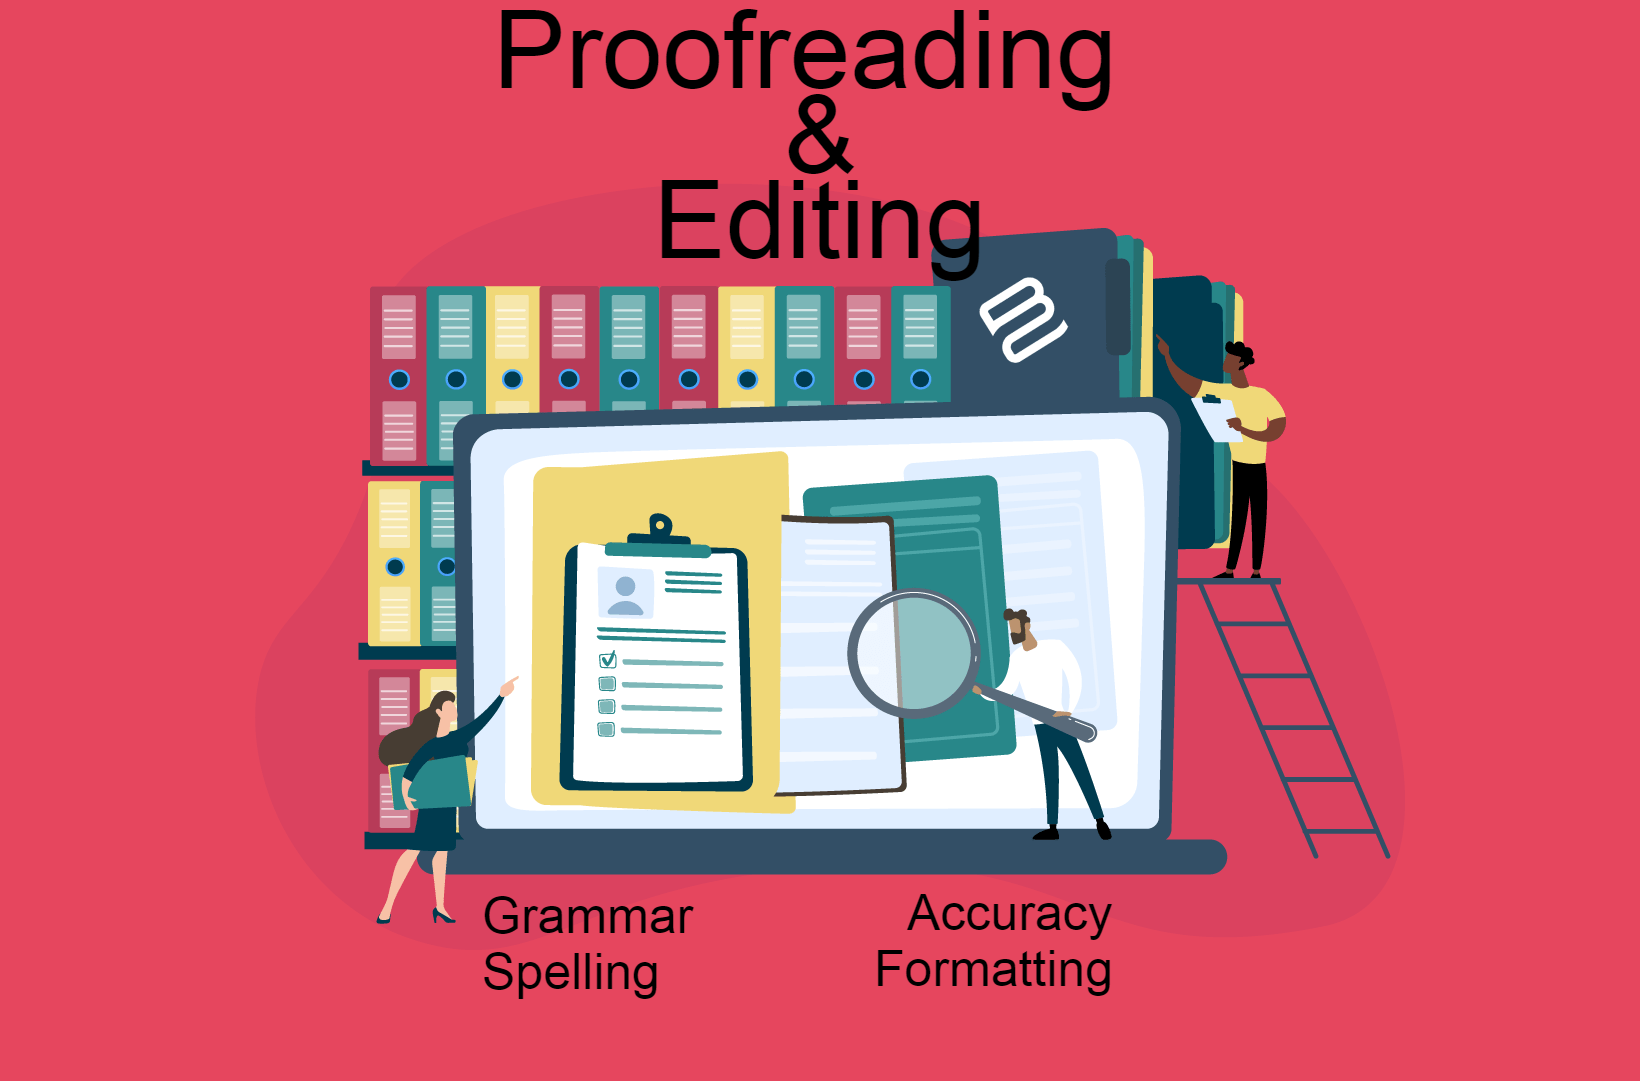 Proofread and Edit 1000 words quickly